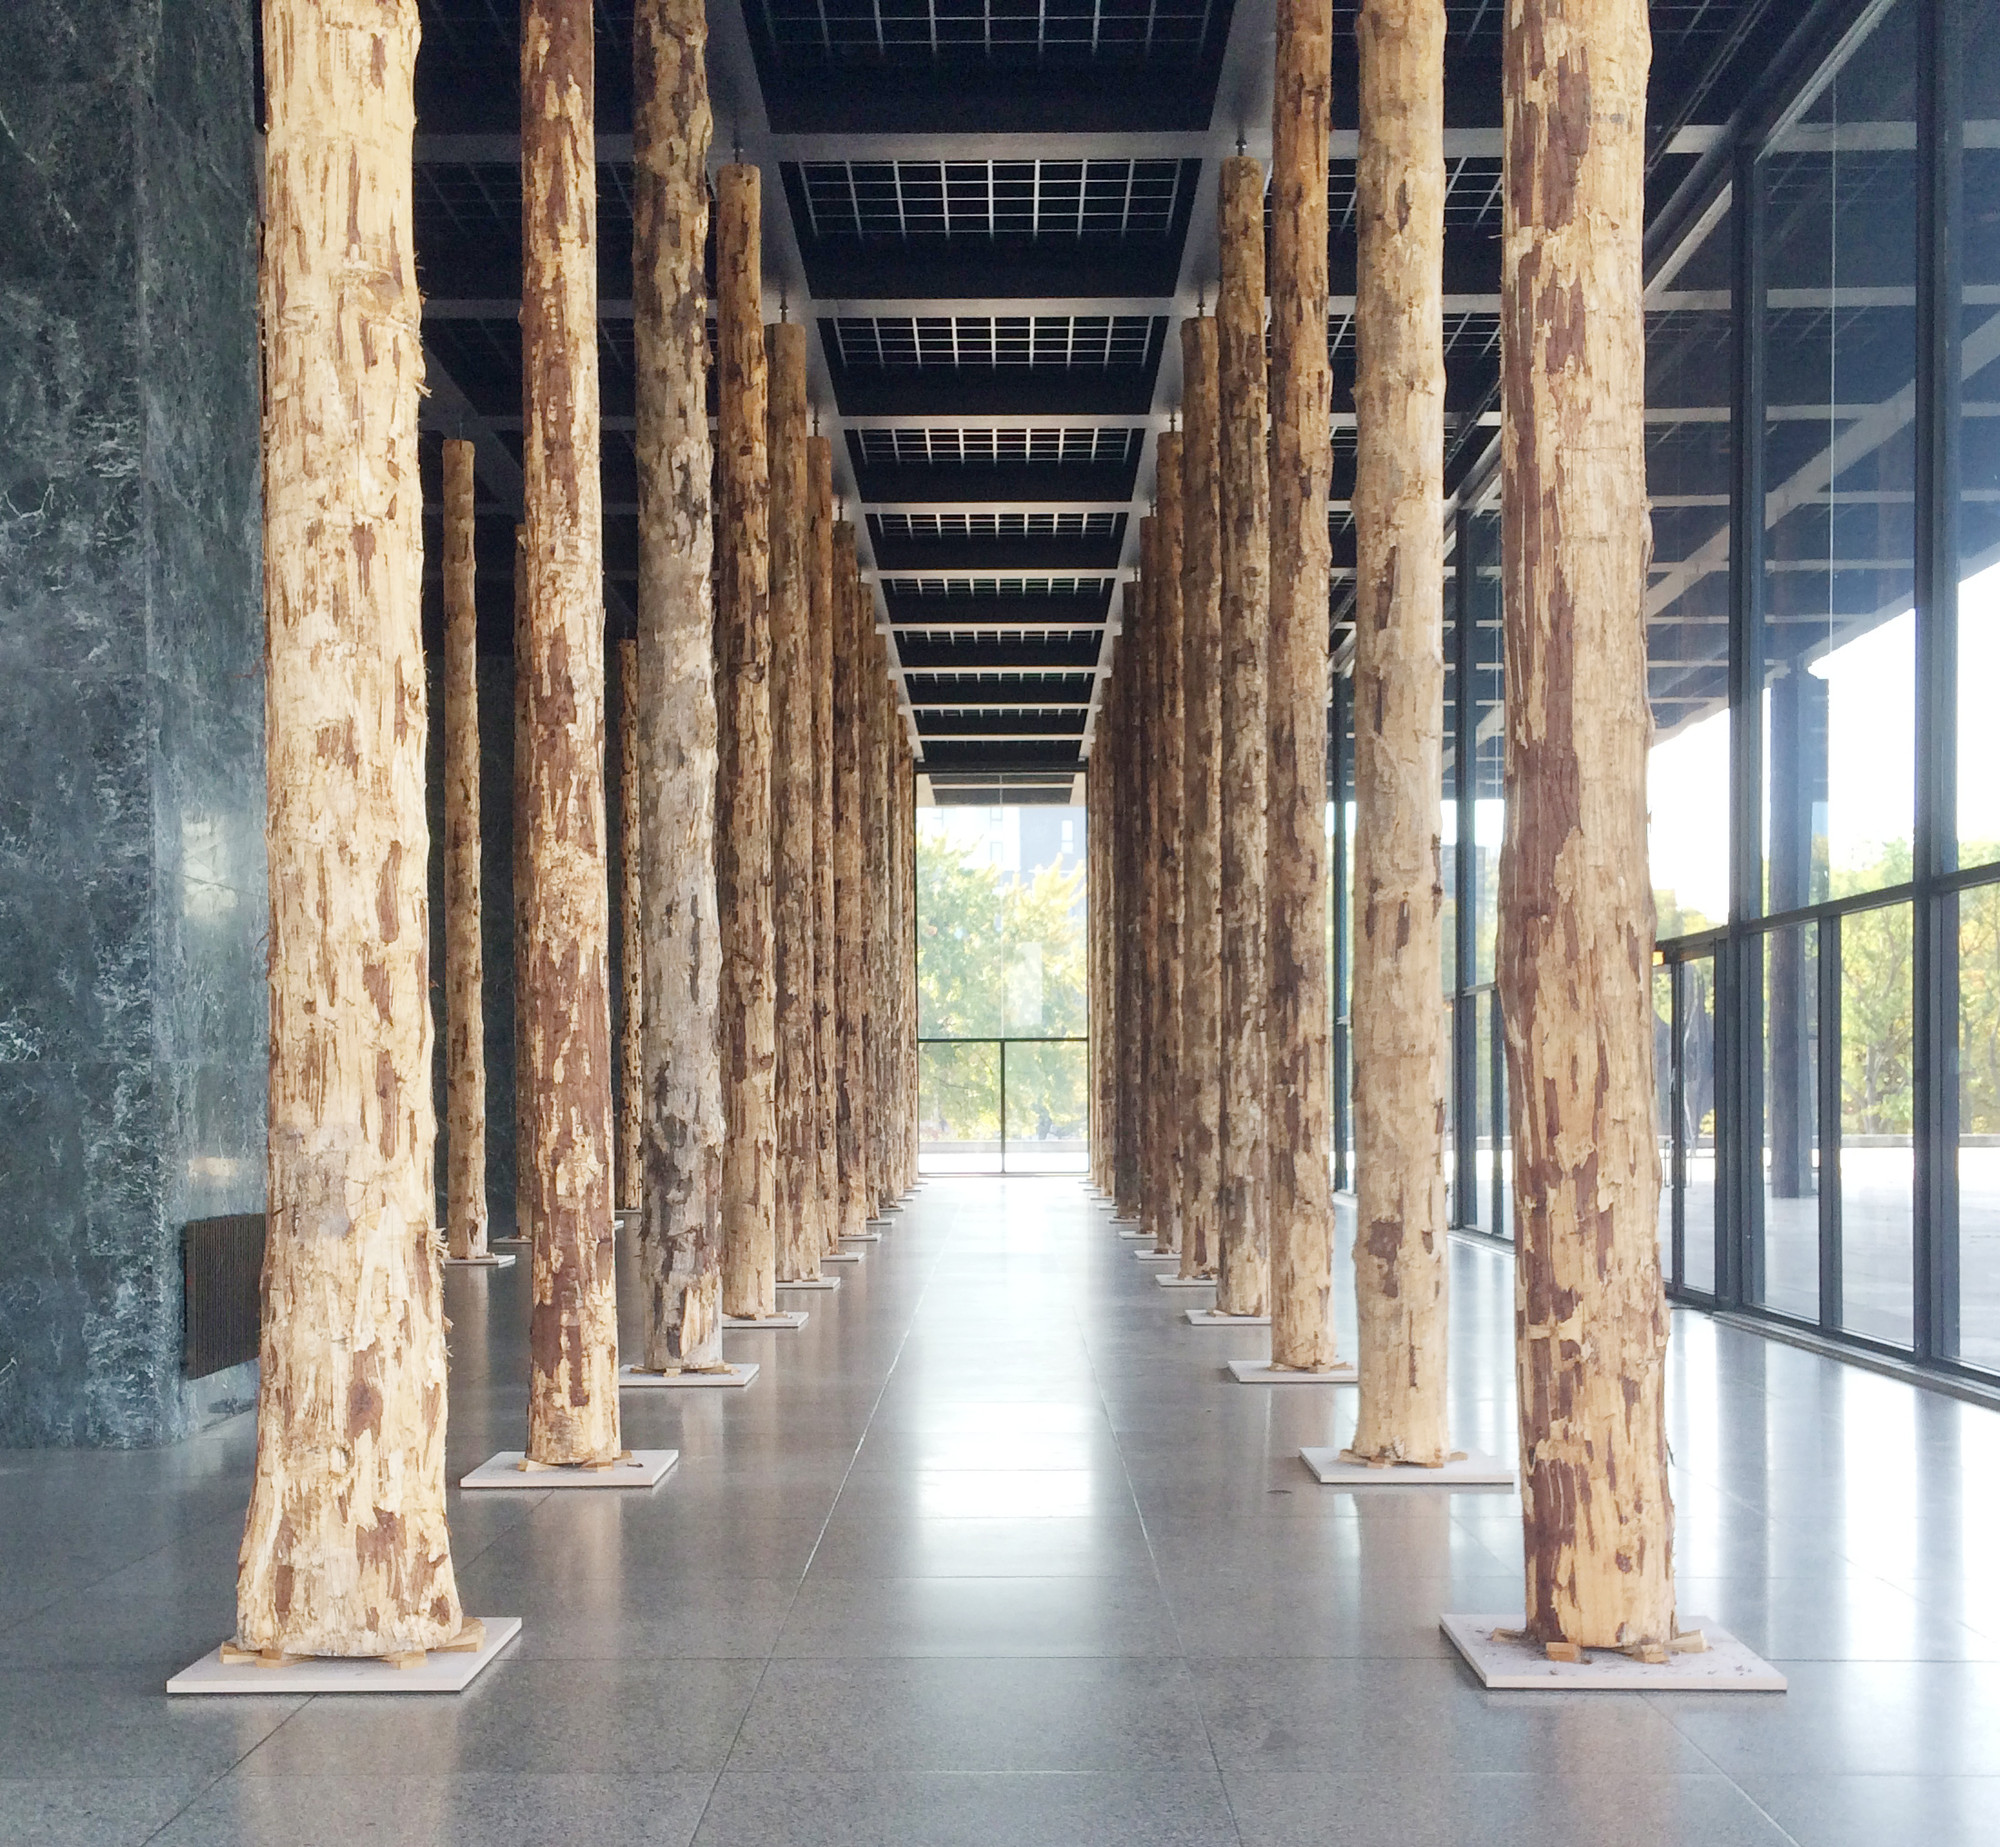 gallery of david chipperfield 39 s sticks and stones toys with van der rohe 39 s bones in berlin 10. Black Bedroom Furniture Sets. Home Design Ideas